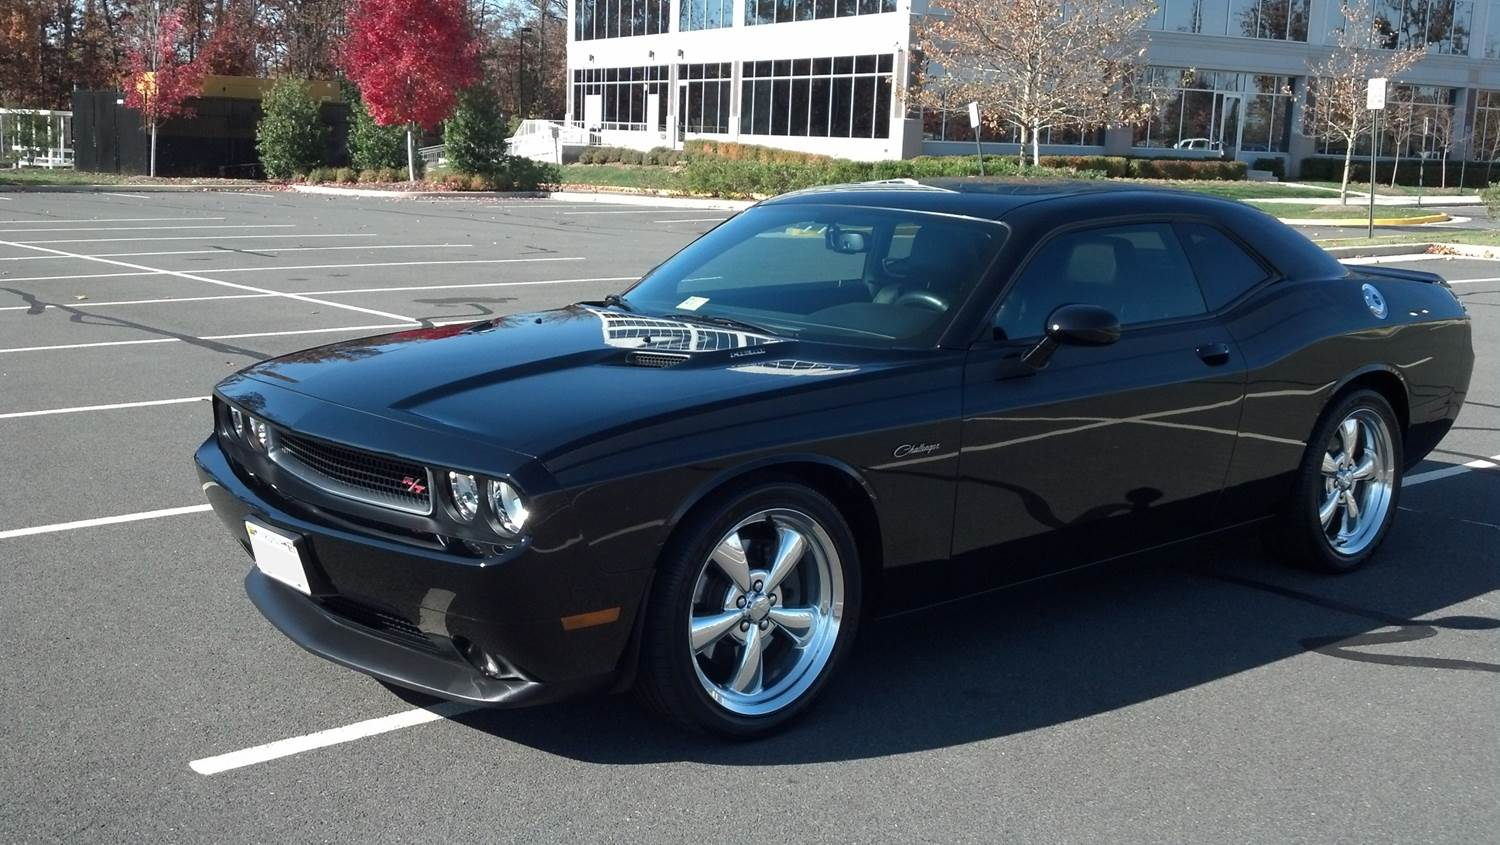 dodge challenger image 2012 dodge challenger cargurus. Black Bedroom Furniture Sets. Home Design Ideas